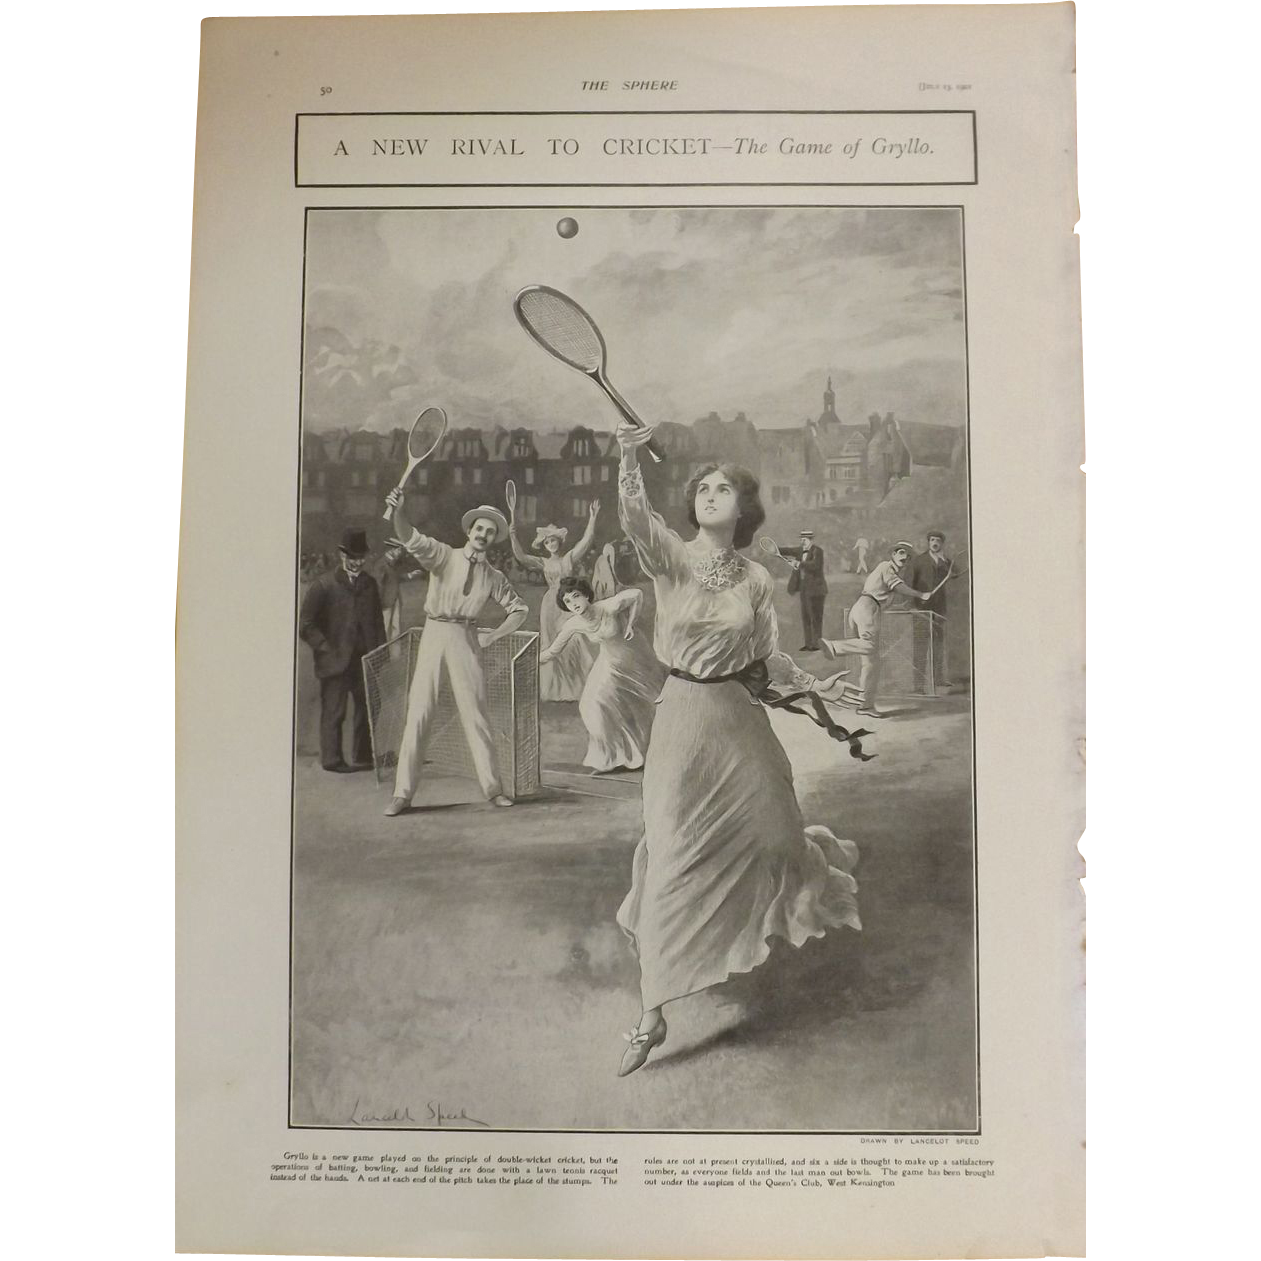 Original  Page 'A  New Rival To Cricket -The Game of Gryllo' - The Sphere Jul.1901